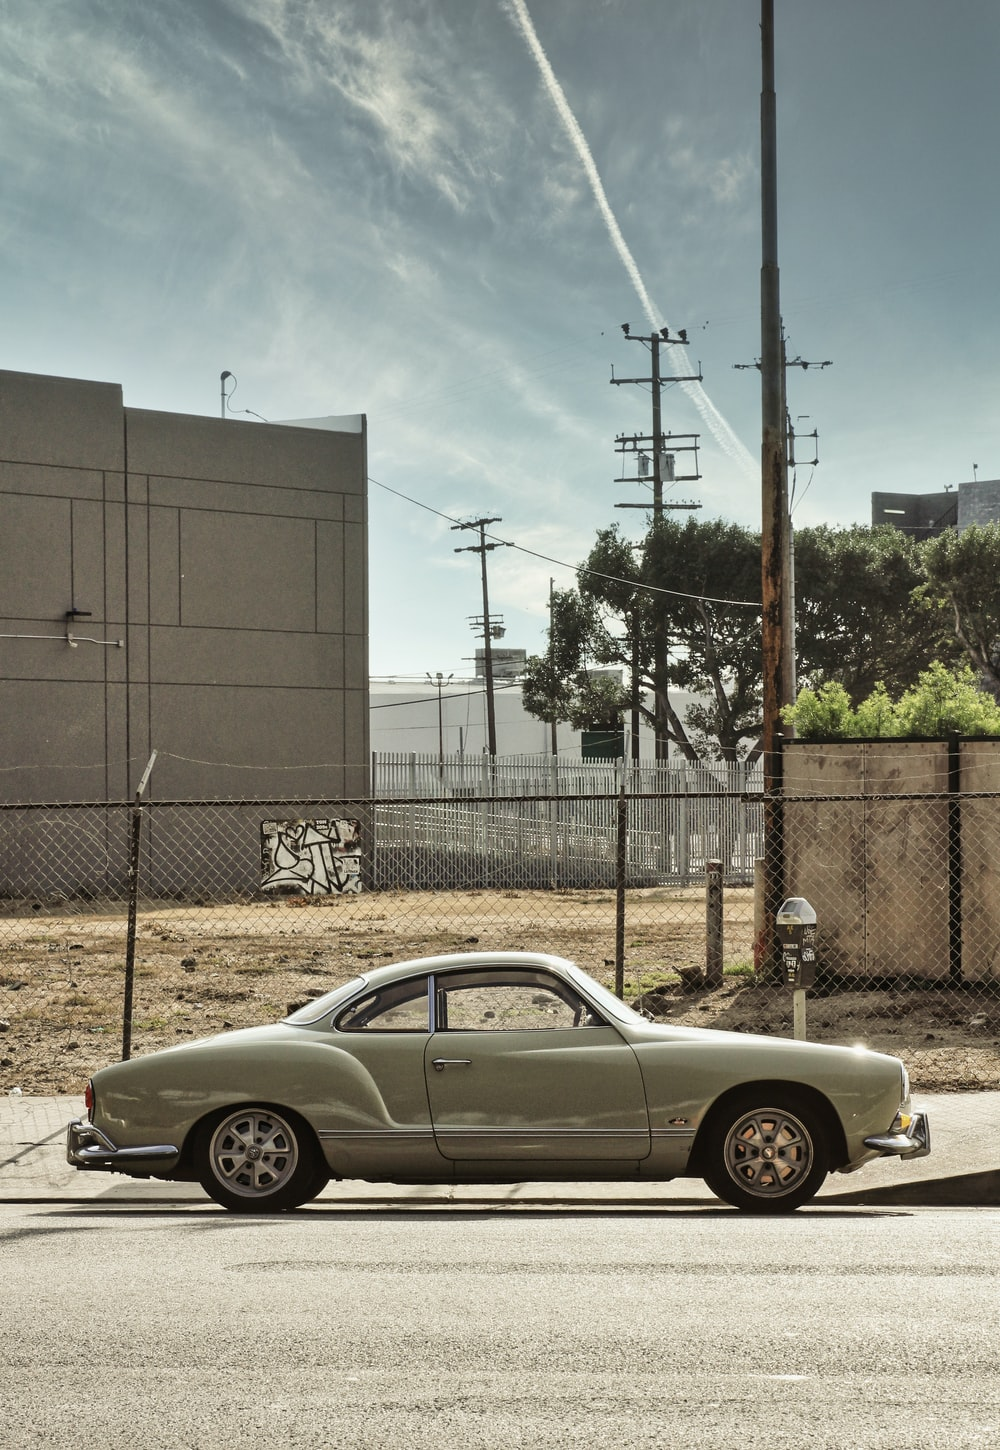 silver coupe parked beside gray metal fence